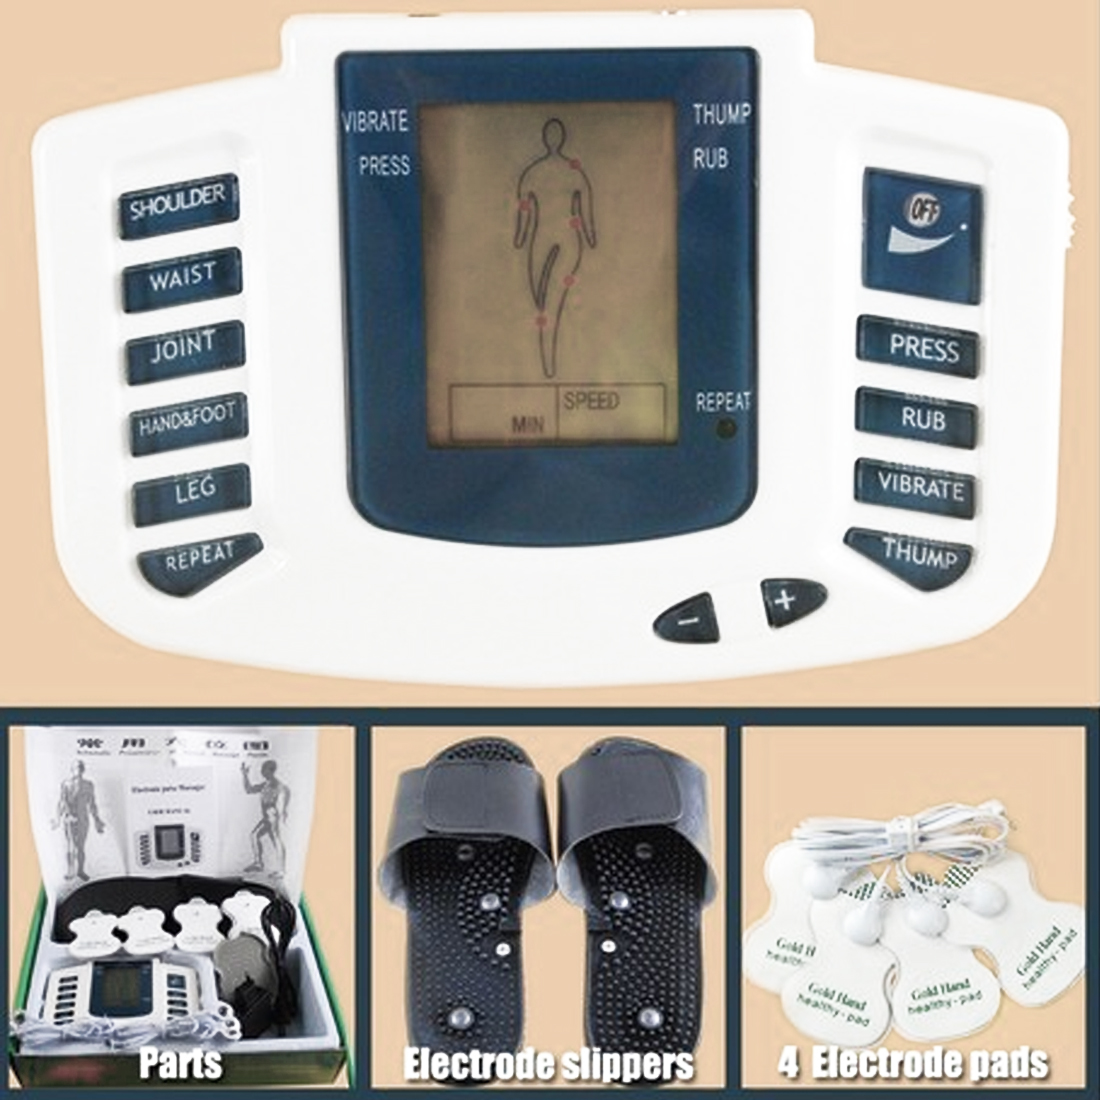 High Quality Electrical Muscle Stimulator Body Relax Muscle Massager Pulse Tens Acupuncture Therapy Slipper+8 Pads+box electrical stimulator muscle massager slipper electrode pads body relax pulse tens acupuncture therapy digital machine